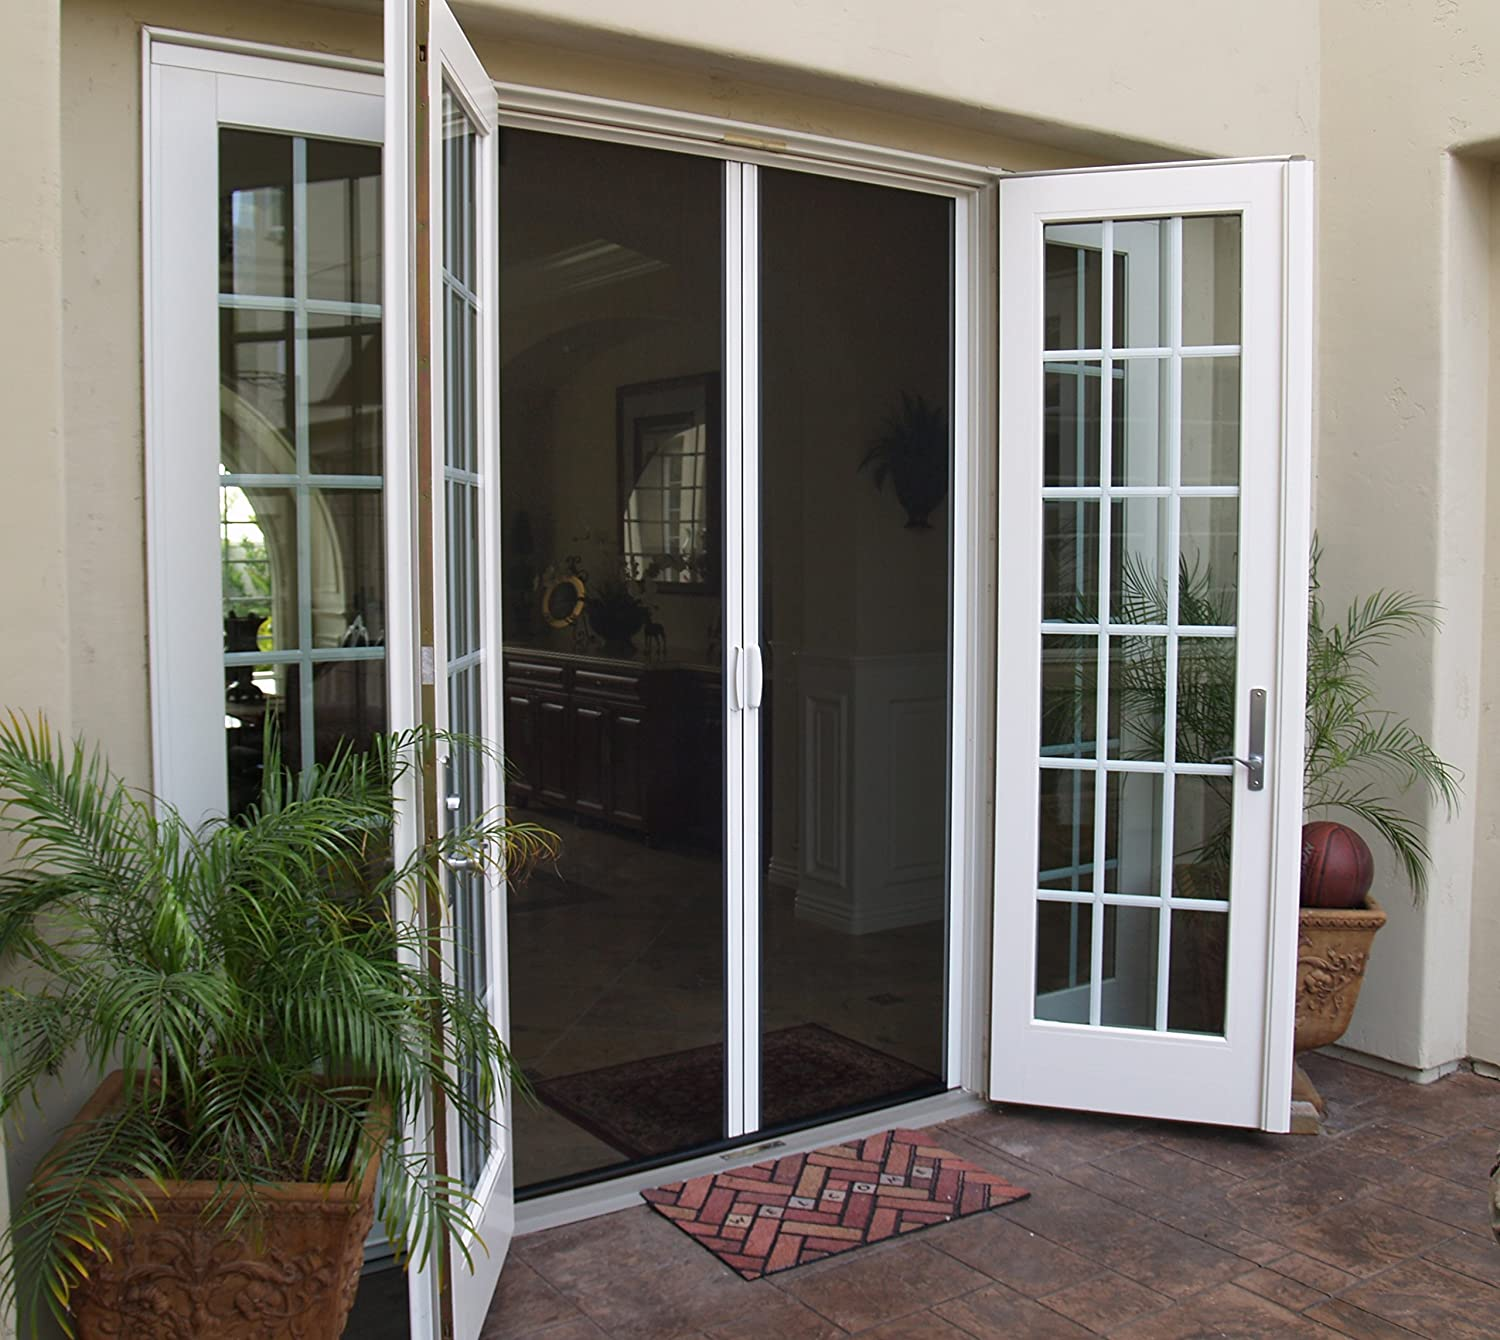 Casper Retractable Double Door Screen White Amazon